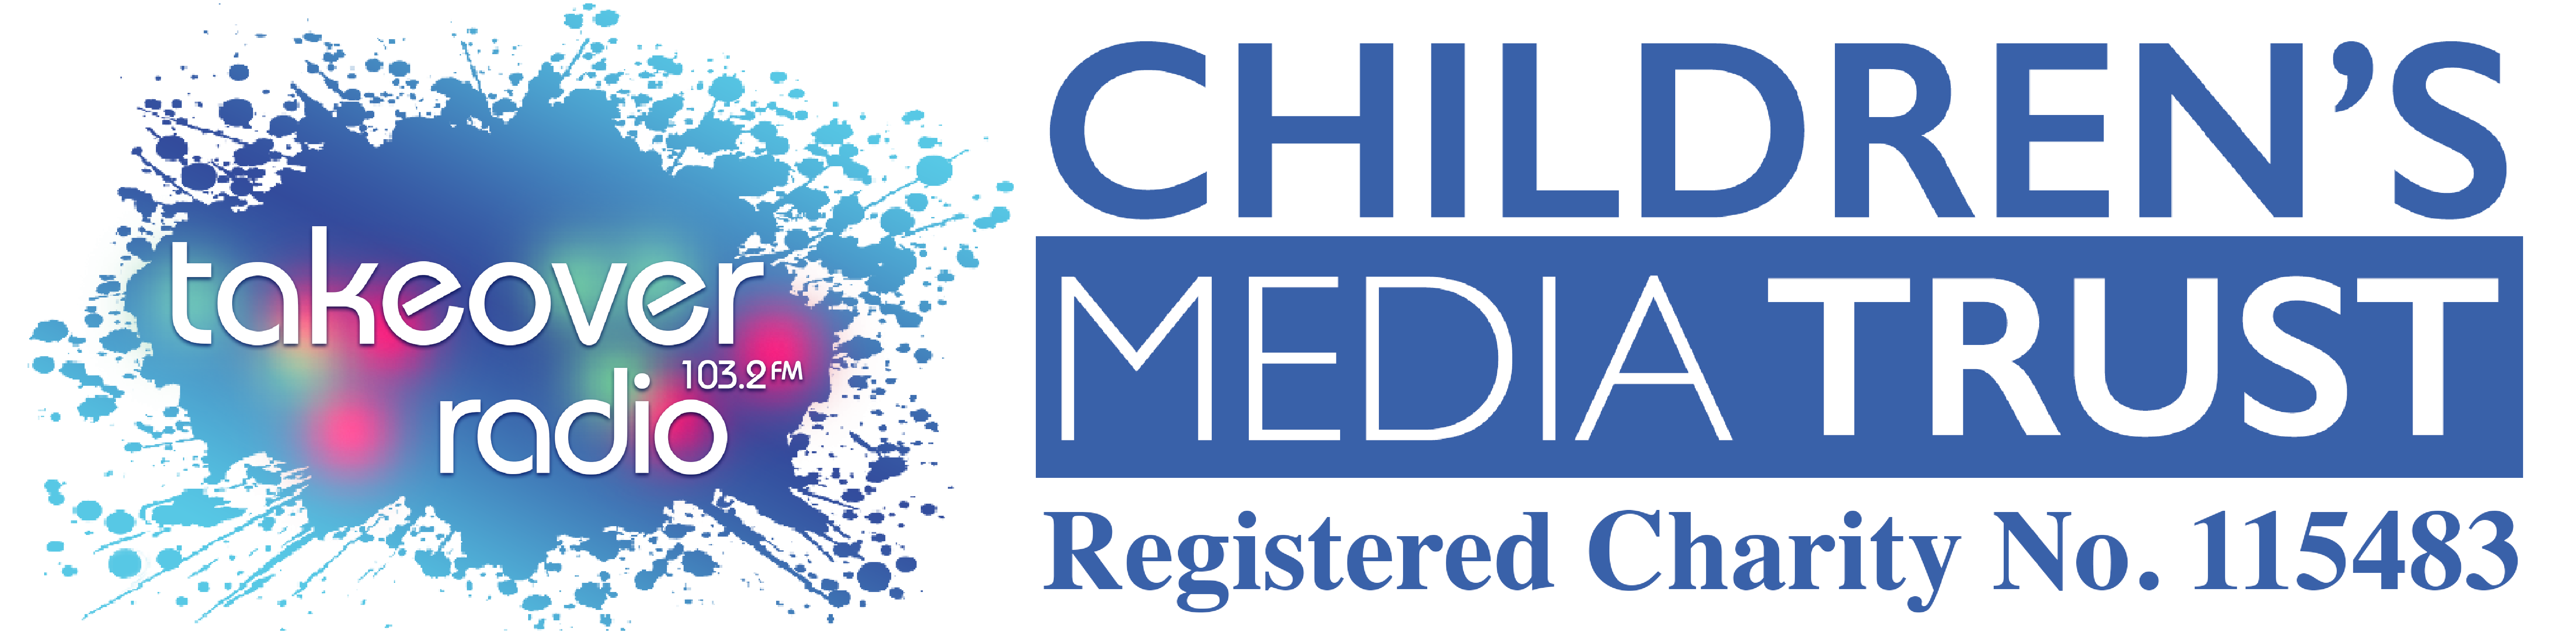 Takeover Radio Children's Media Trust